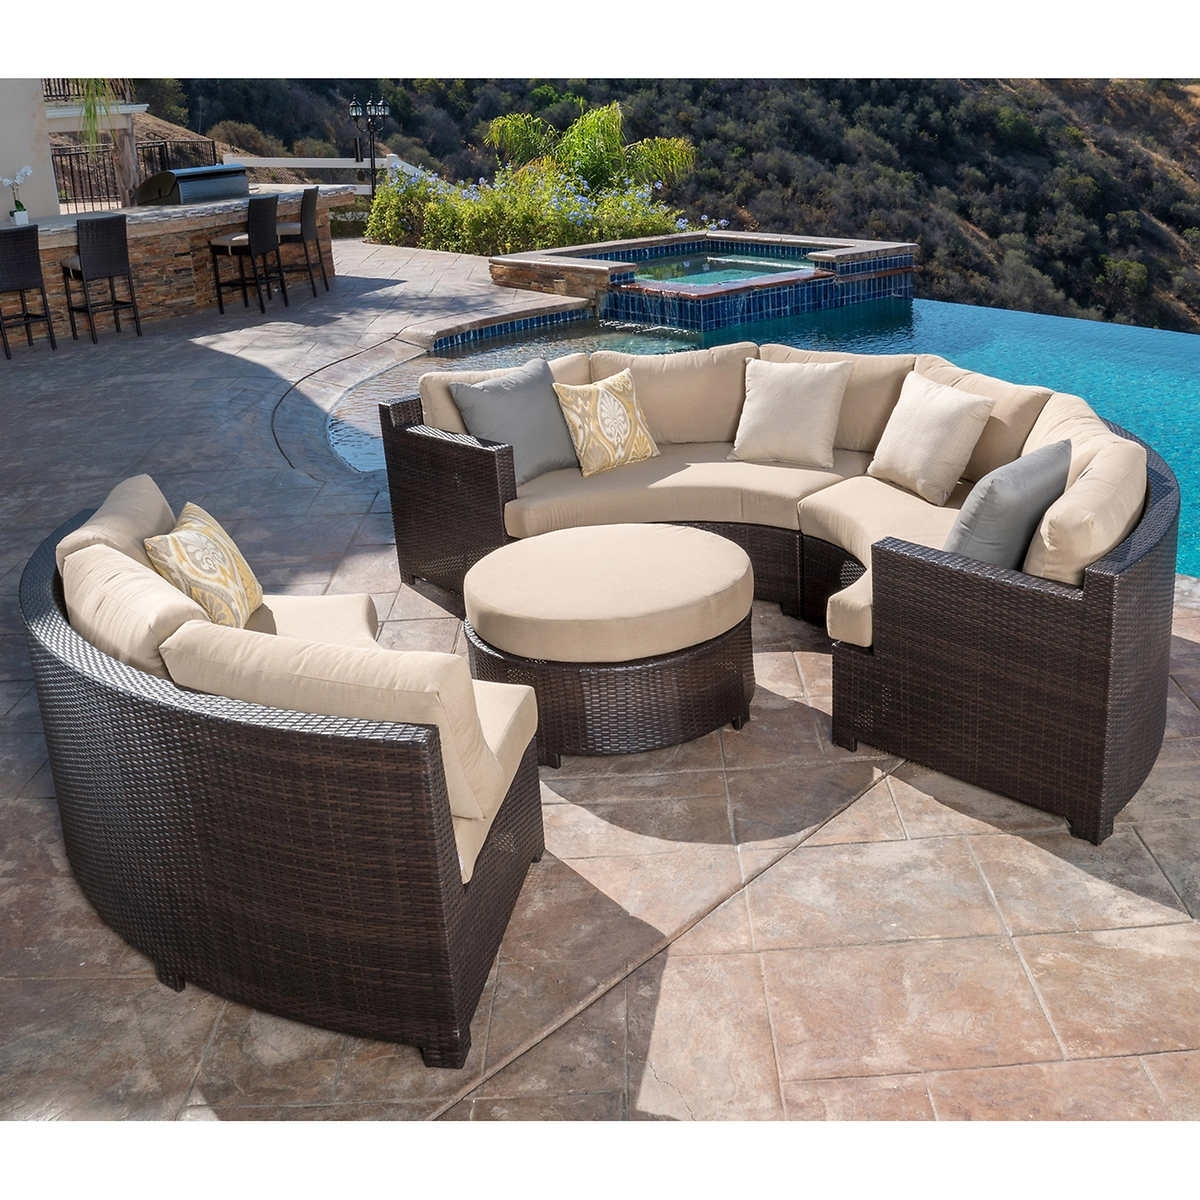 Most Up To Date Costco Patio Conversation Sets Intended For Furniture: Patio Astounding Costco Outdoor Costco Patio Furniture (View 7 of 15)